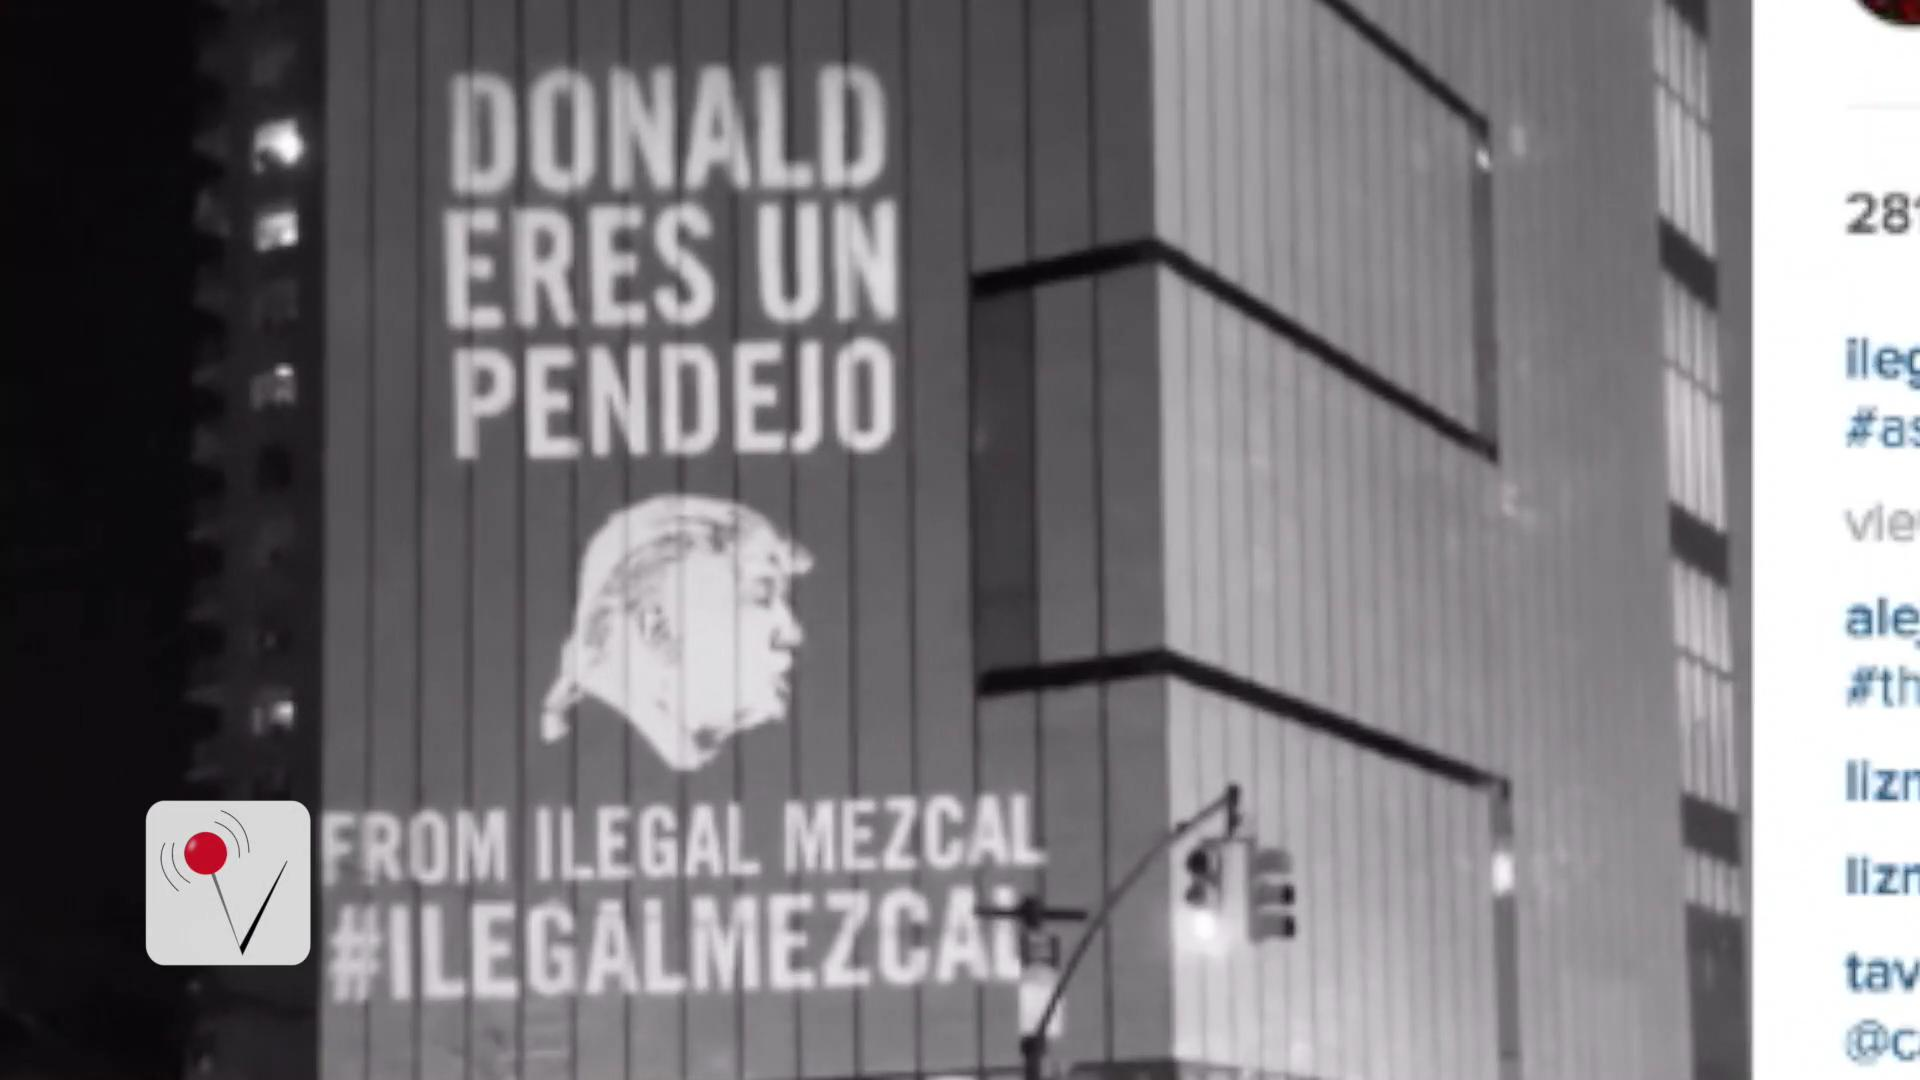 Anti-Donald Trump Campaign Projected Next to His Own Hotel